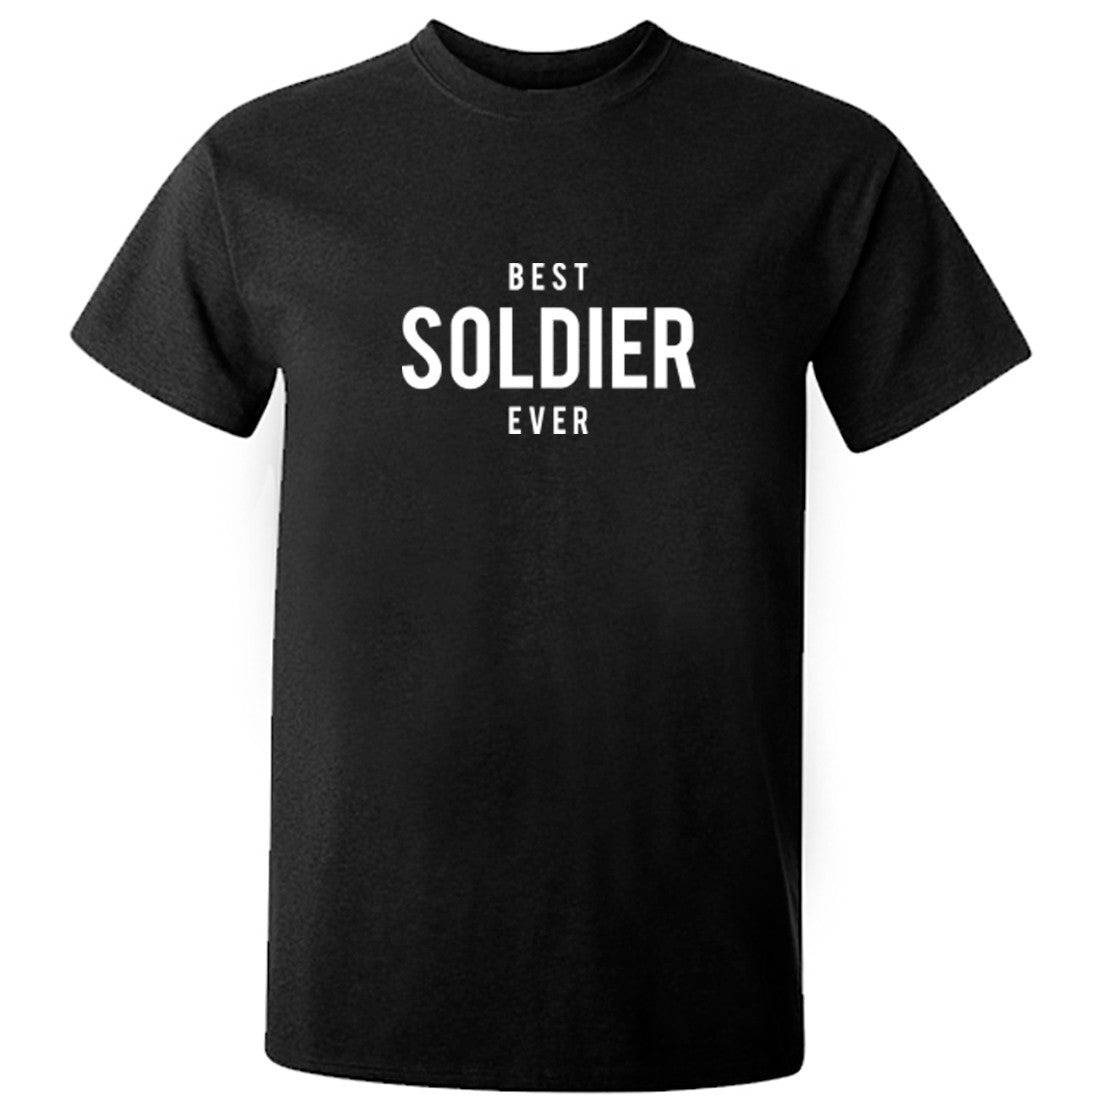 Best Soldier Ever Unisex Fit T-Shirt K1502